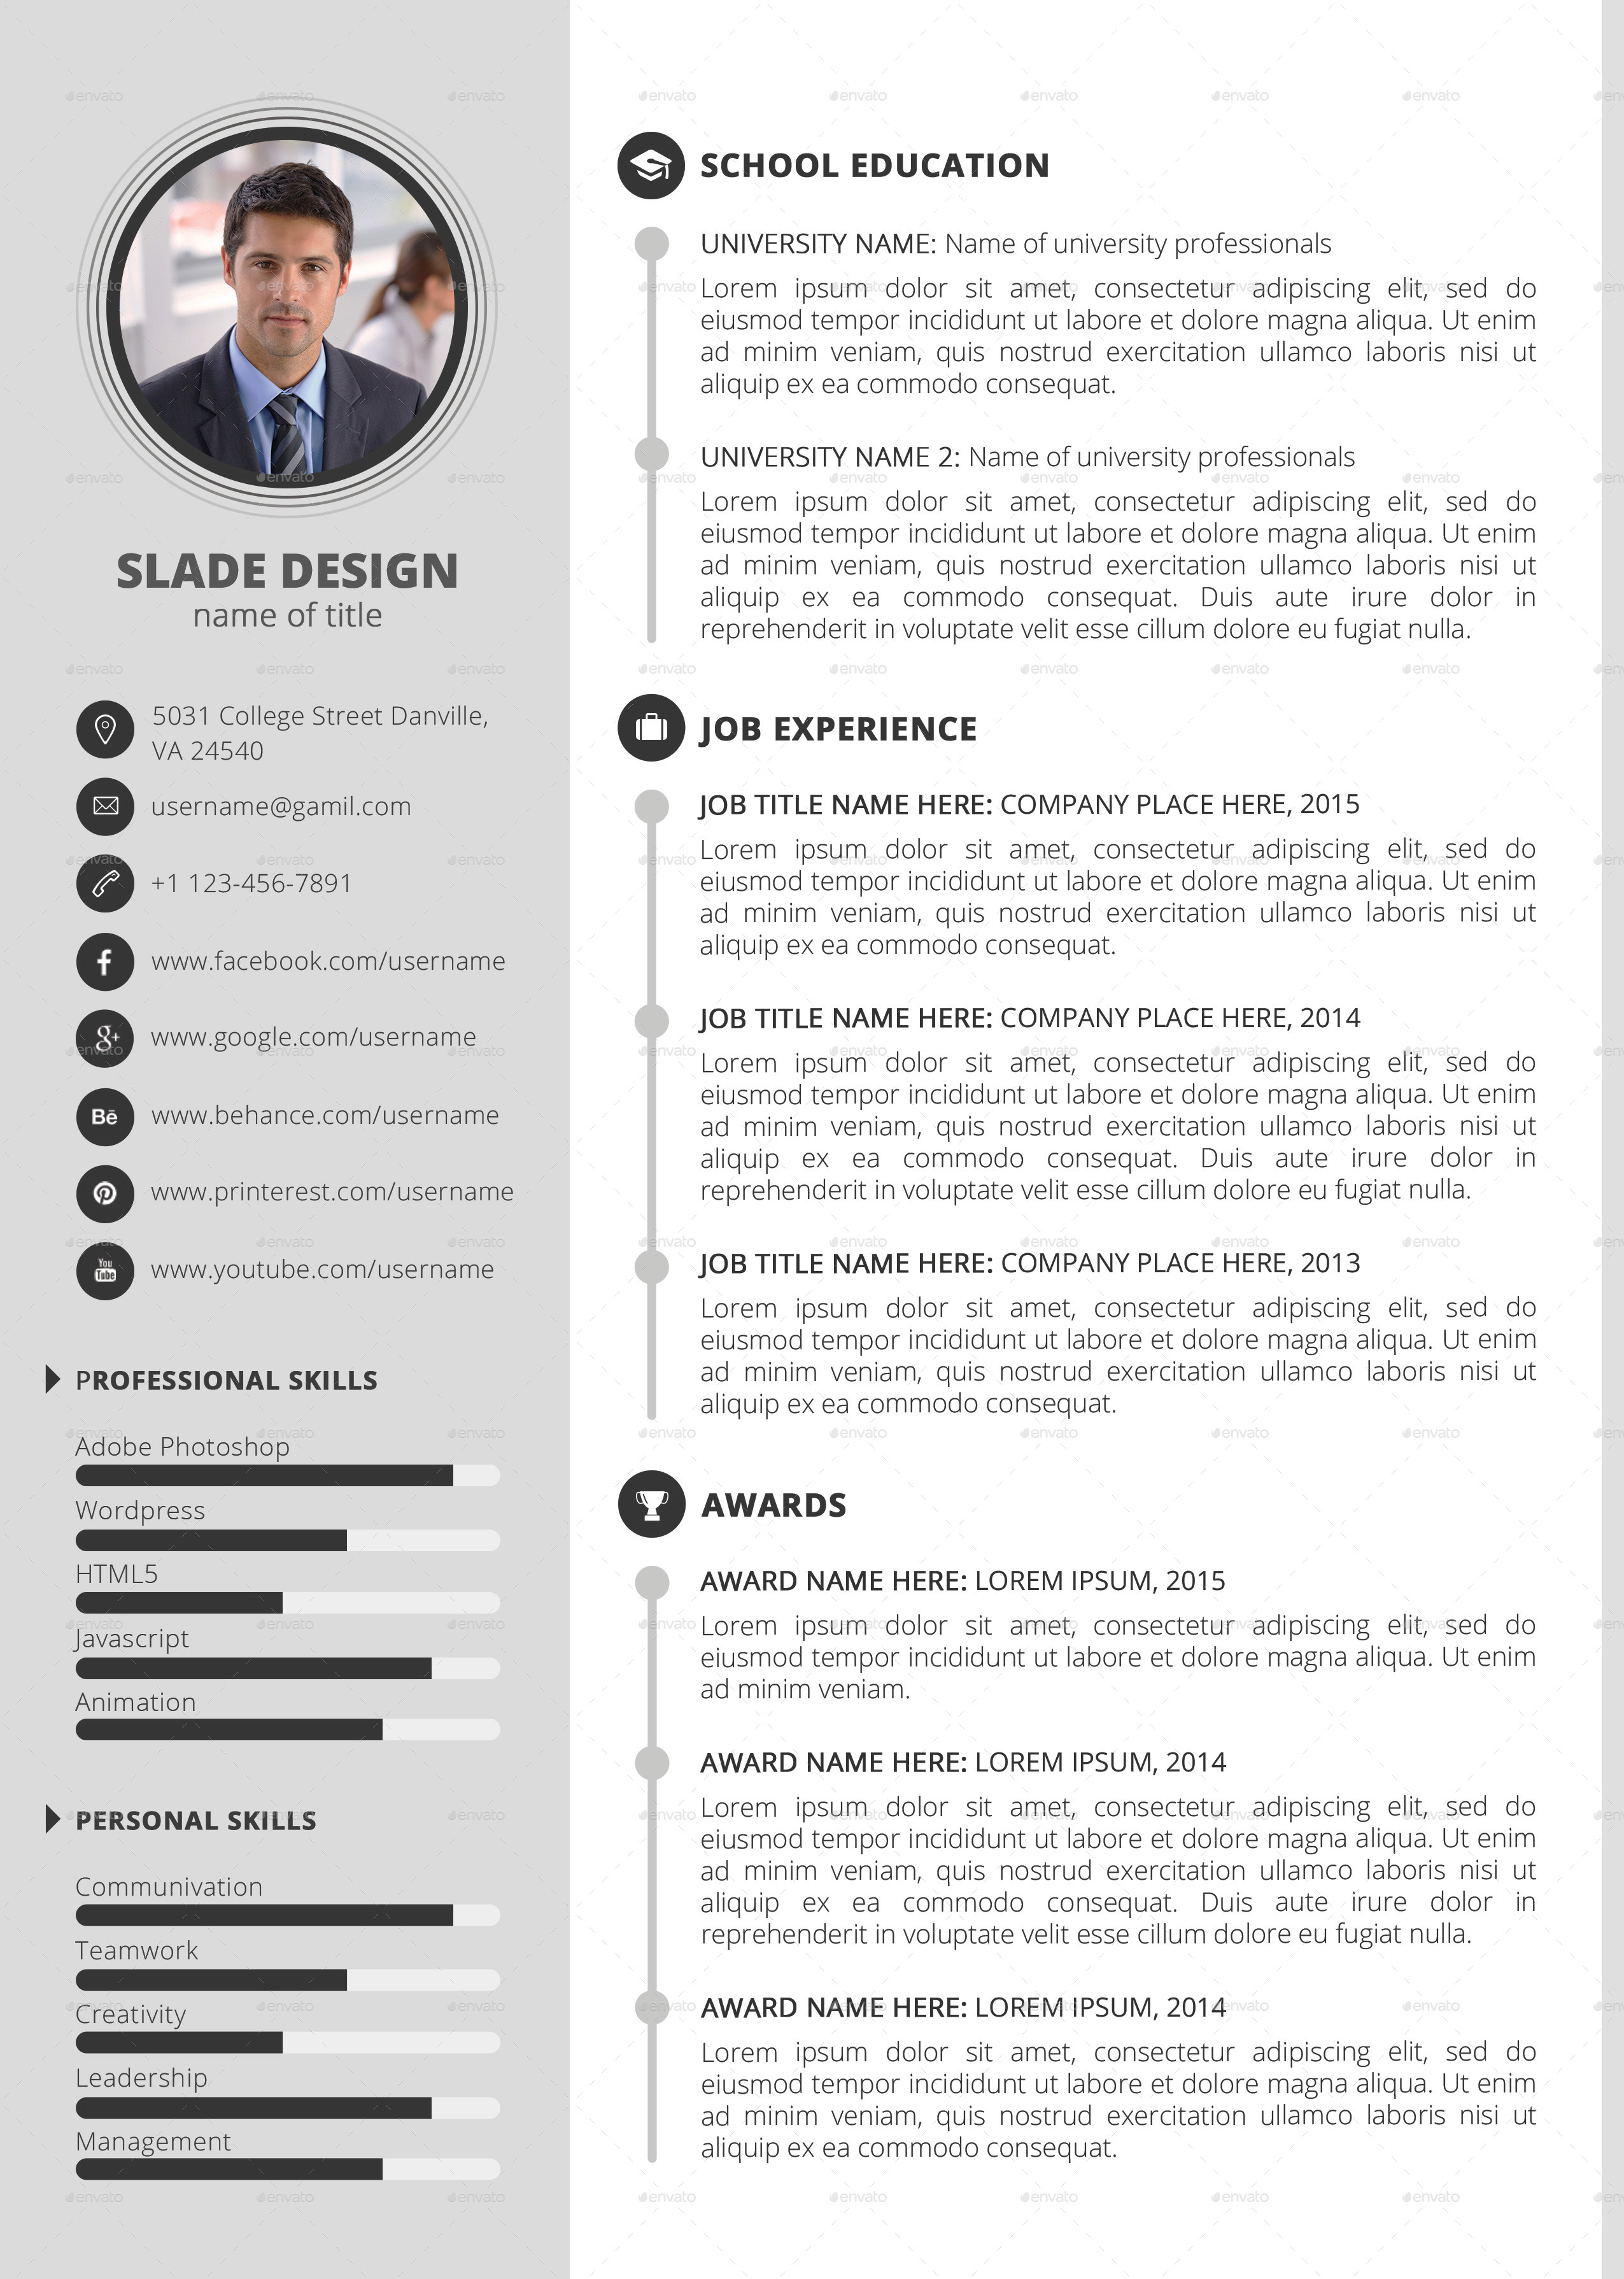 slade professional quality cv    resume template by